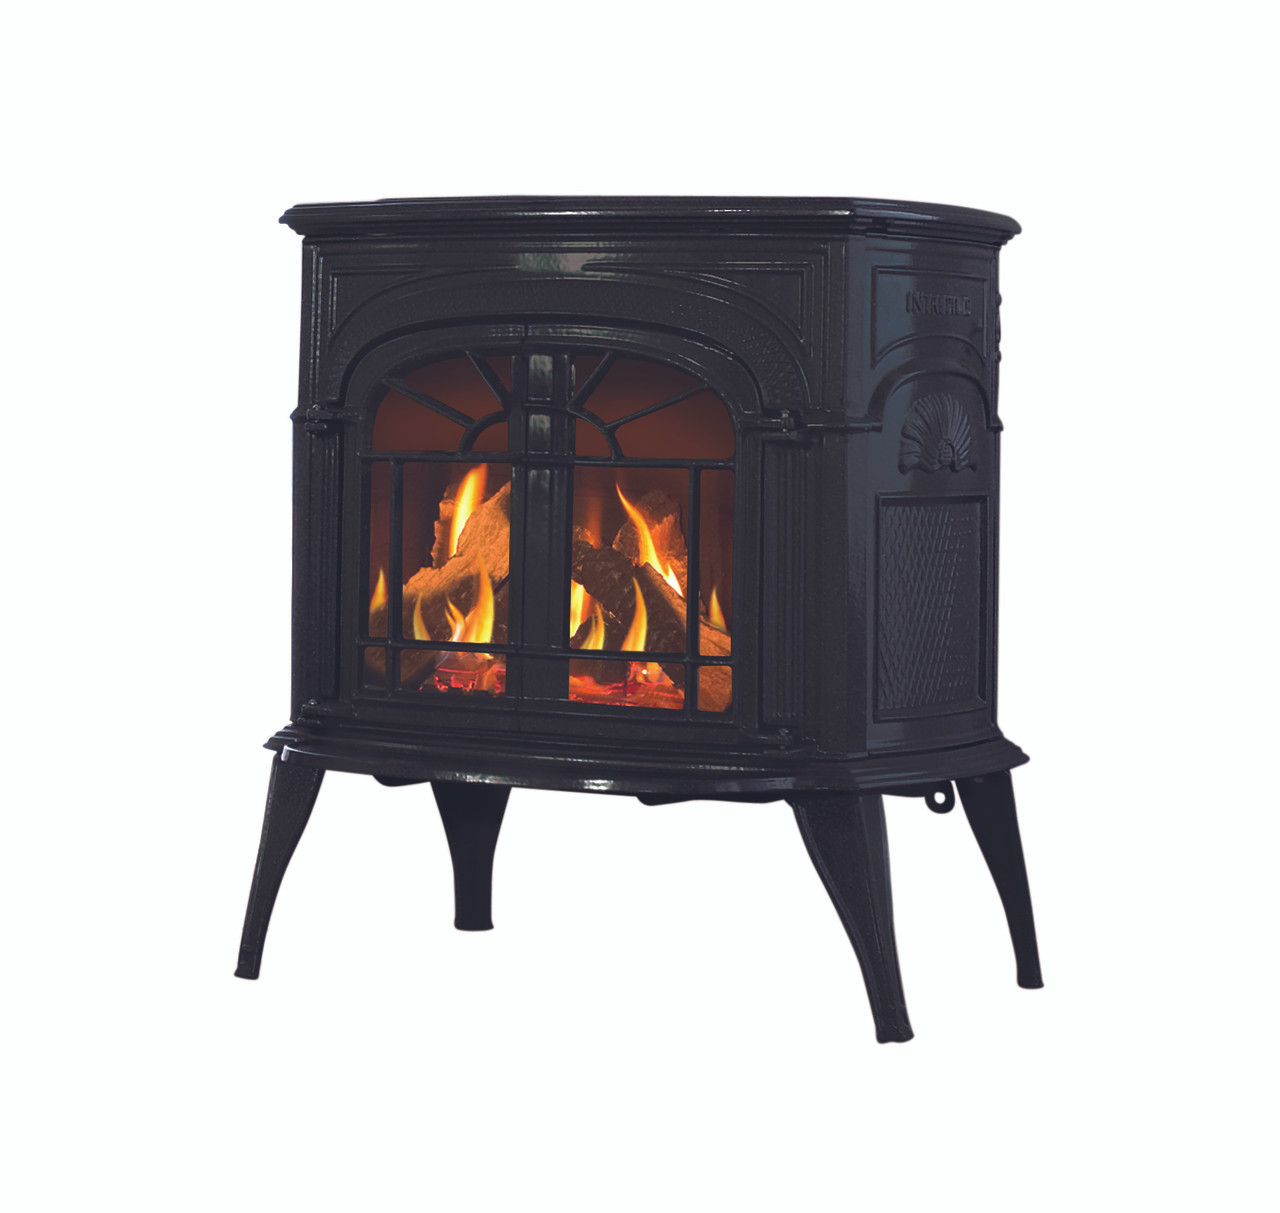 hight resolution of vermont castings intrepid direct vent gas stove